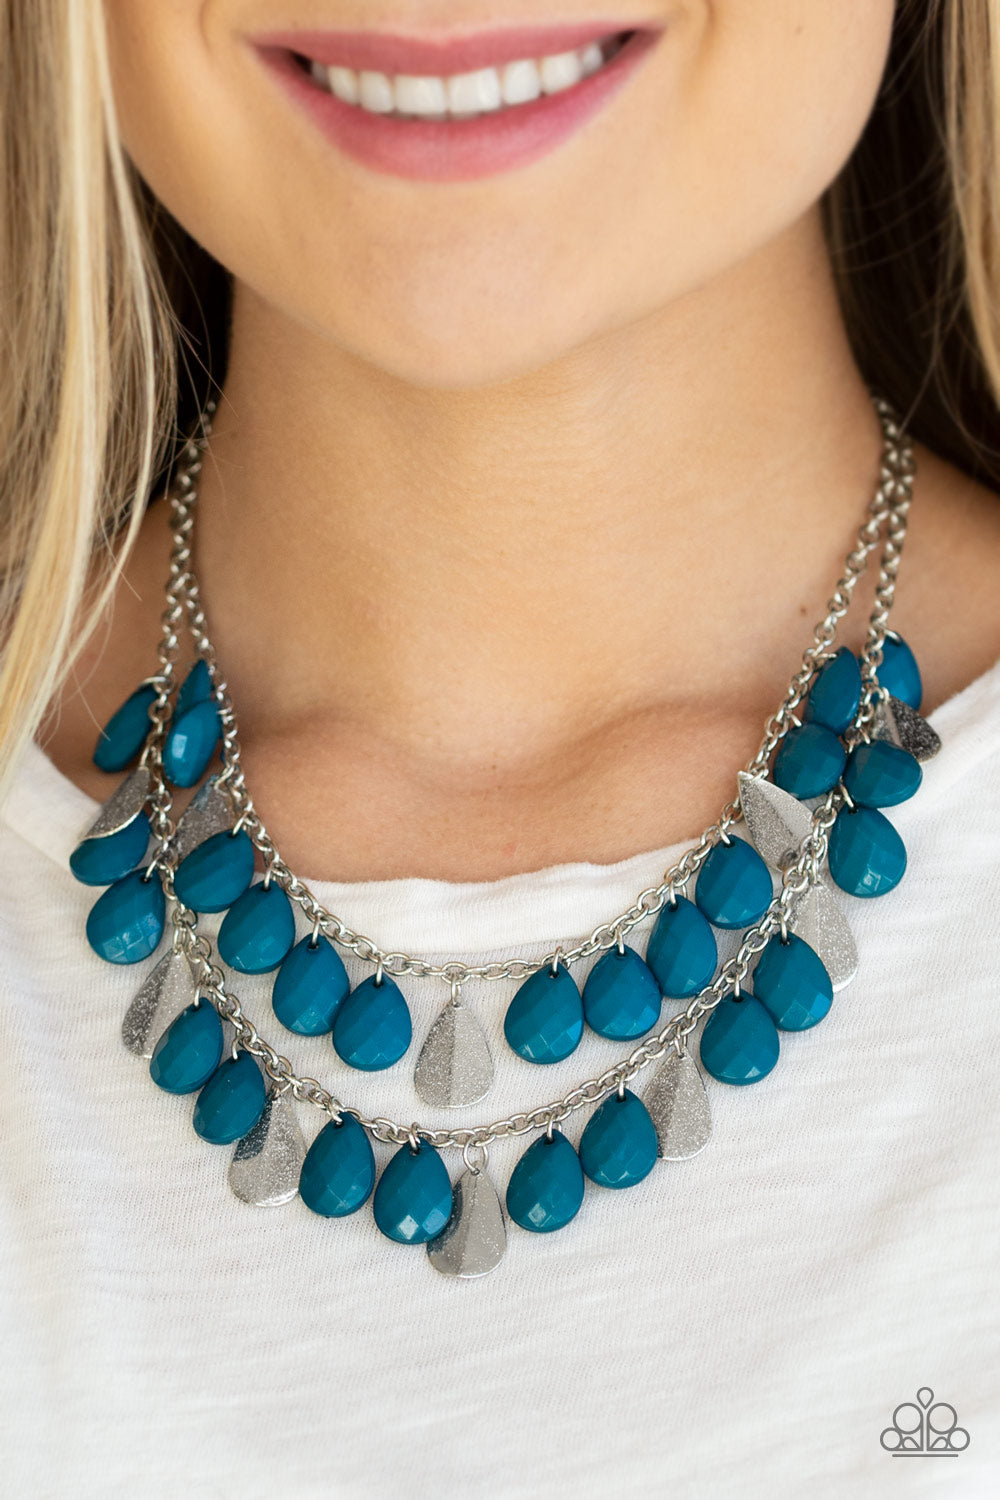 Life Of The FIESTA - Blue Bead Teardrop Paparazzi Jewelry Necklace paparazzi accessories jewelry Necklaces